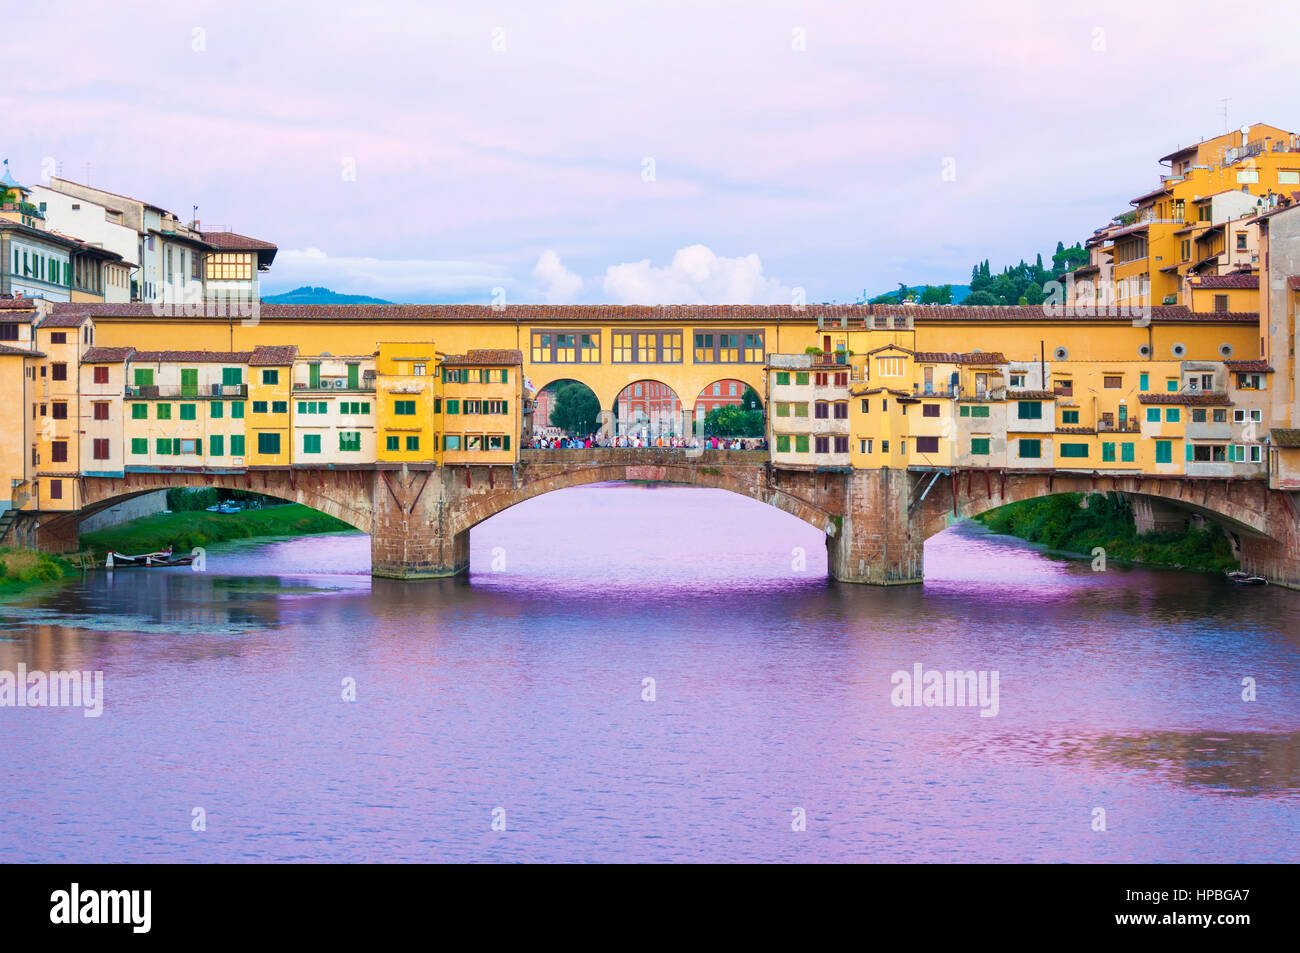 Ponte Vecchio in Florence, Italy - Stock Image